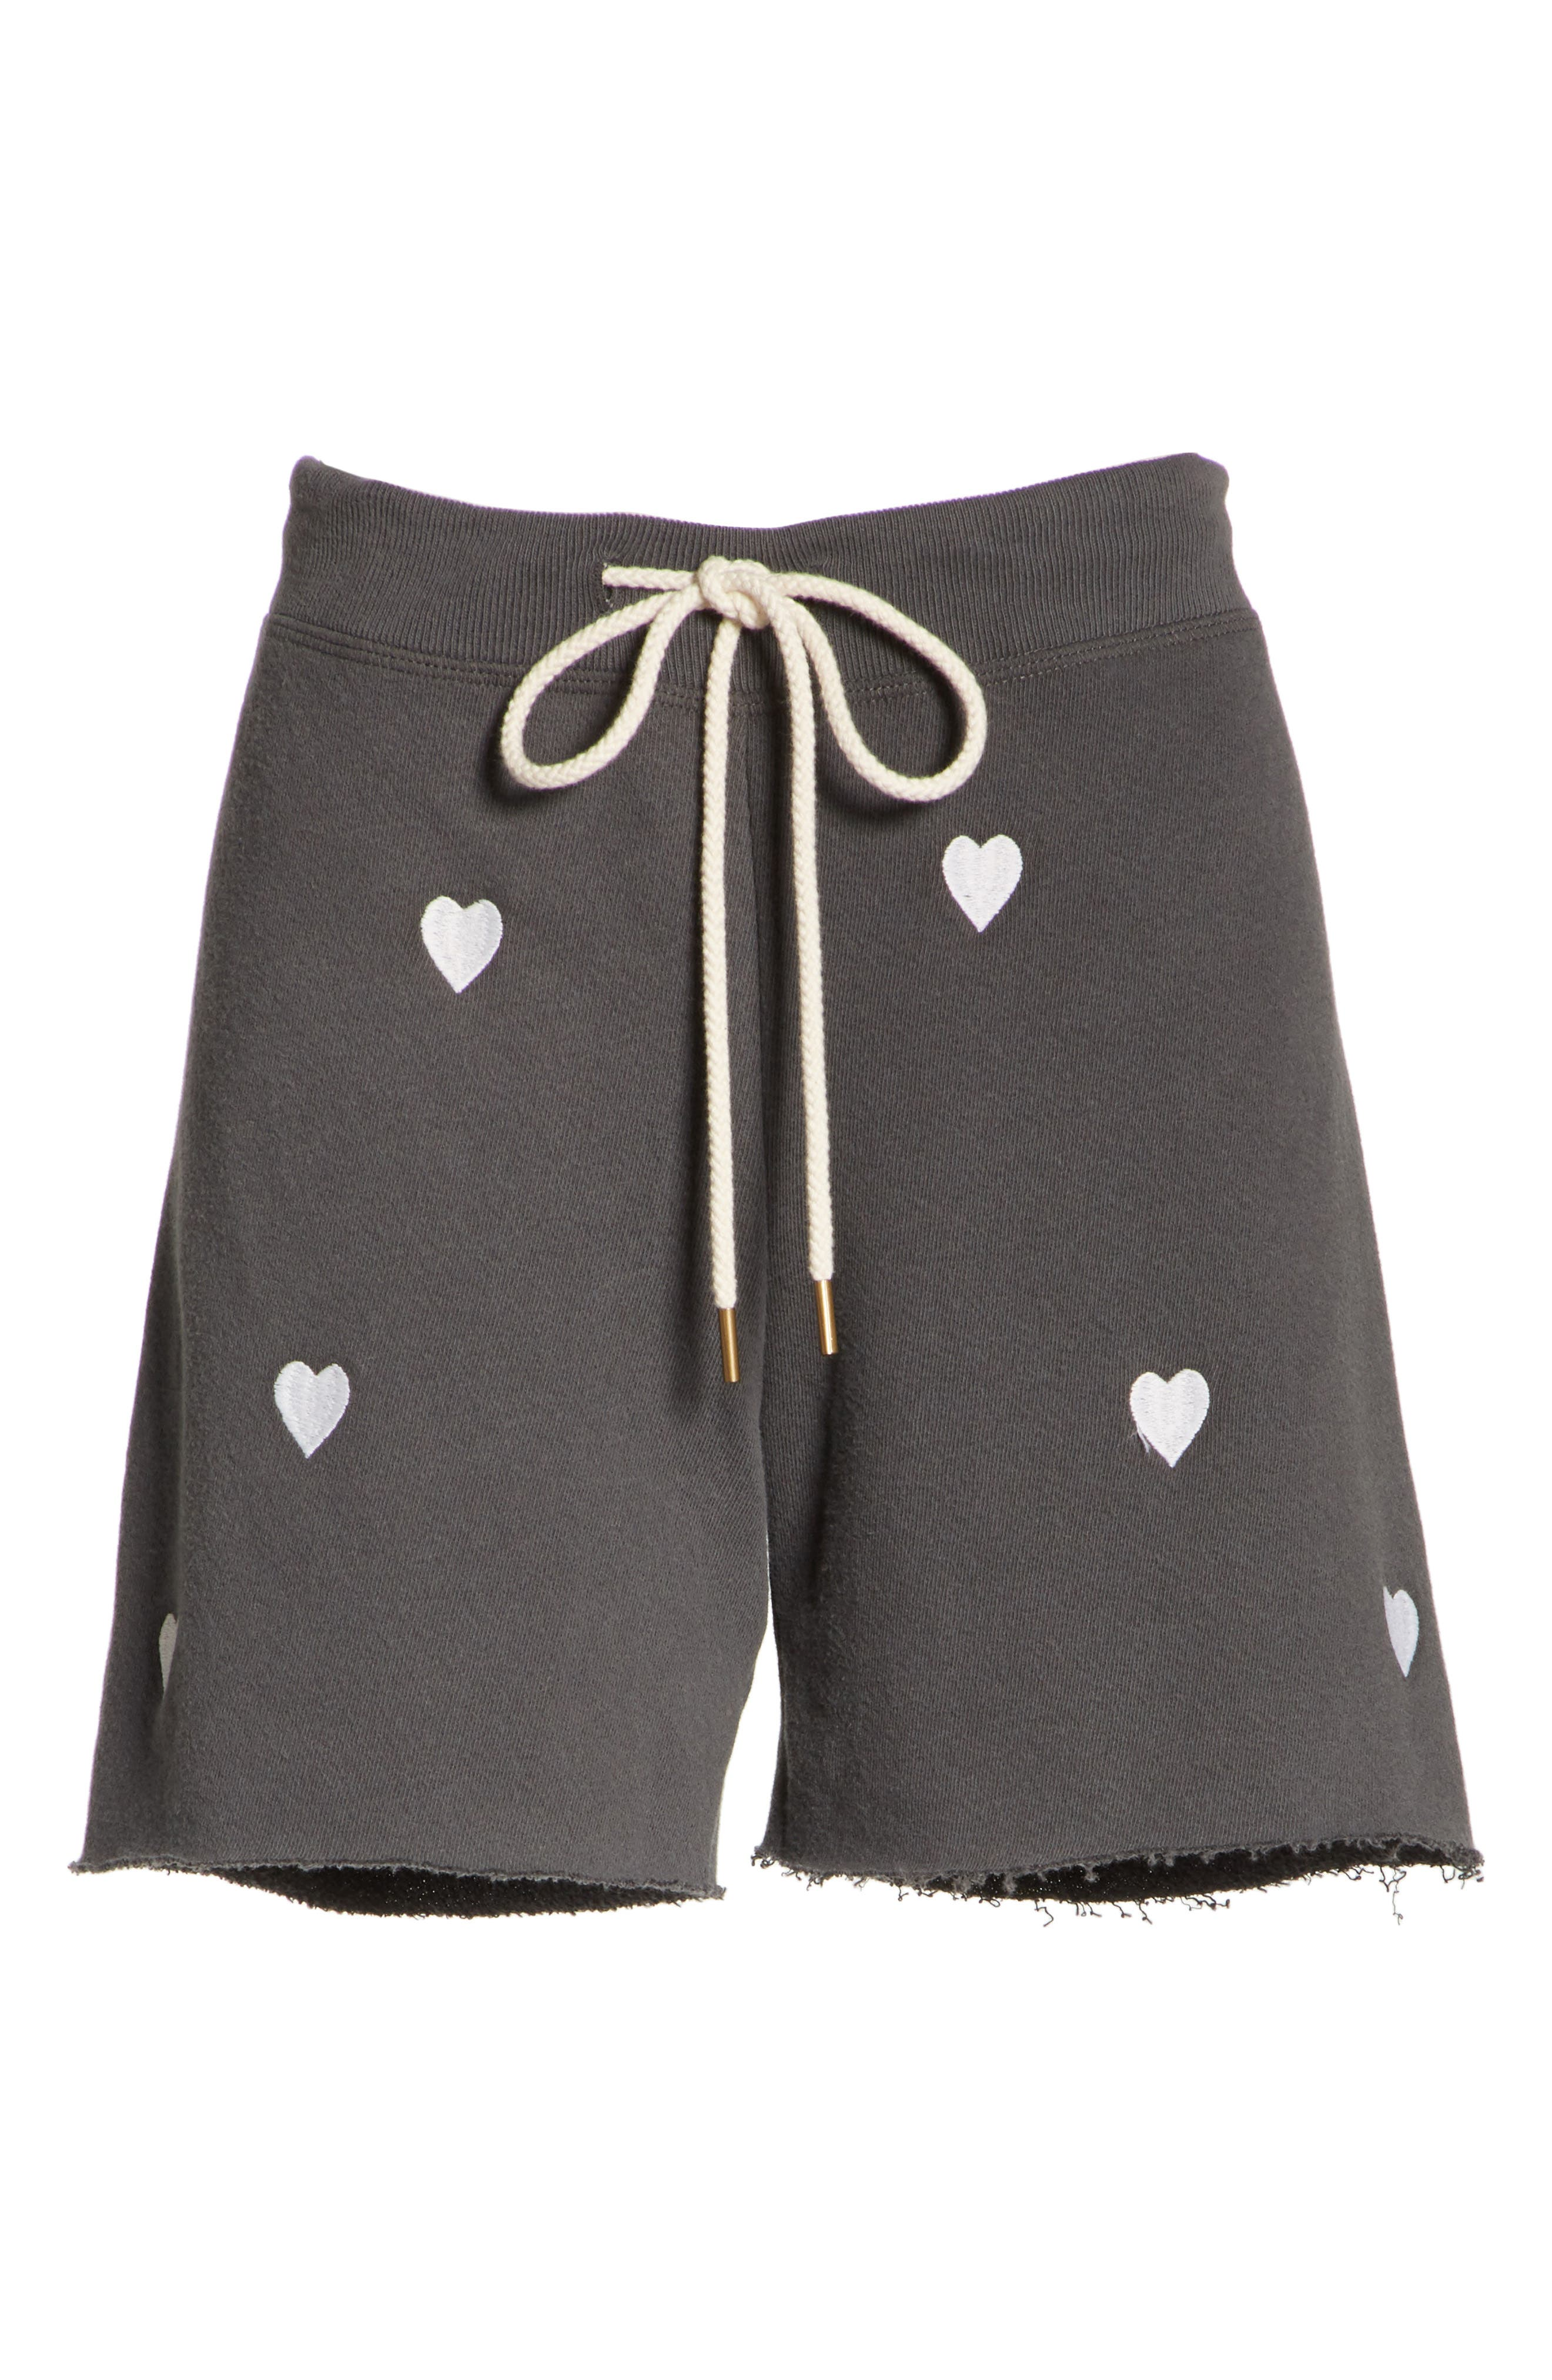 The Sweat Shorts,                             Alternate thumbnail 6, color,                             Washed Black/ White Hearts